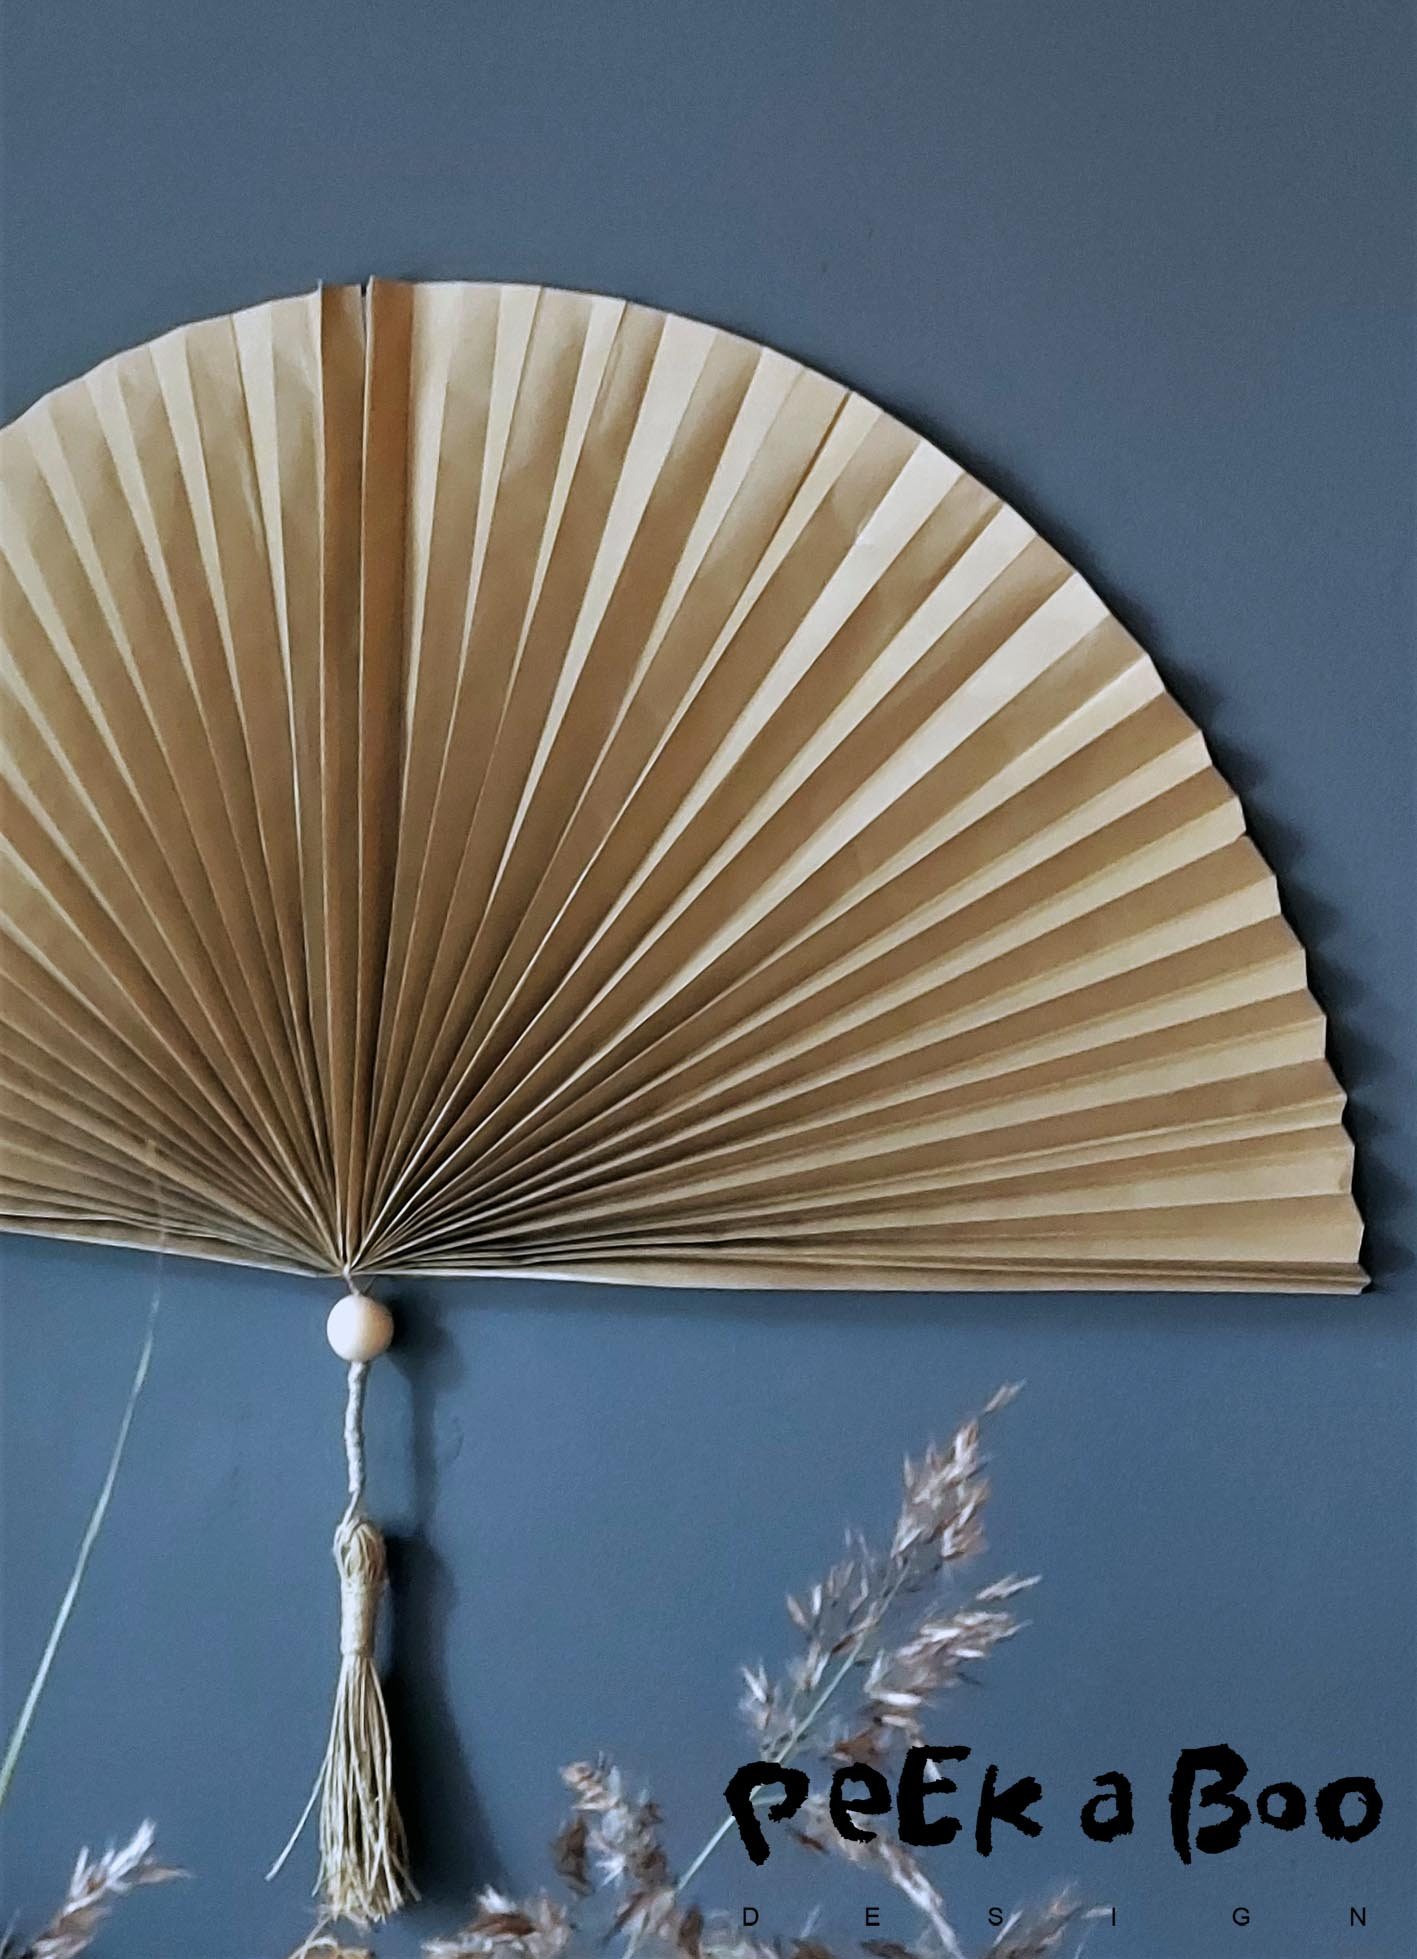 The pretty DIY fan made of brown wrapping paper.